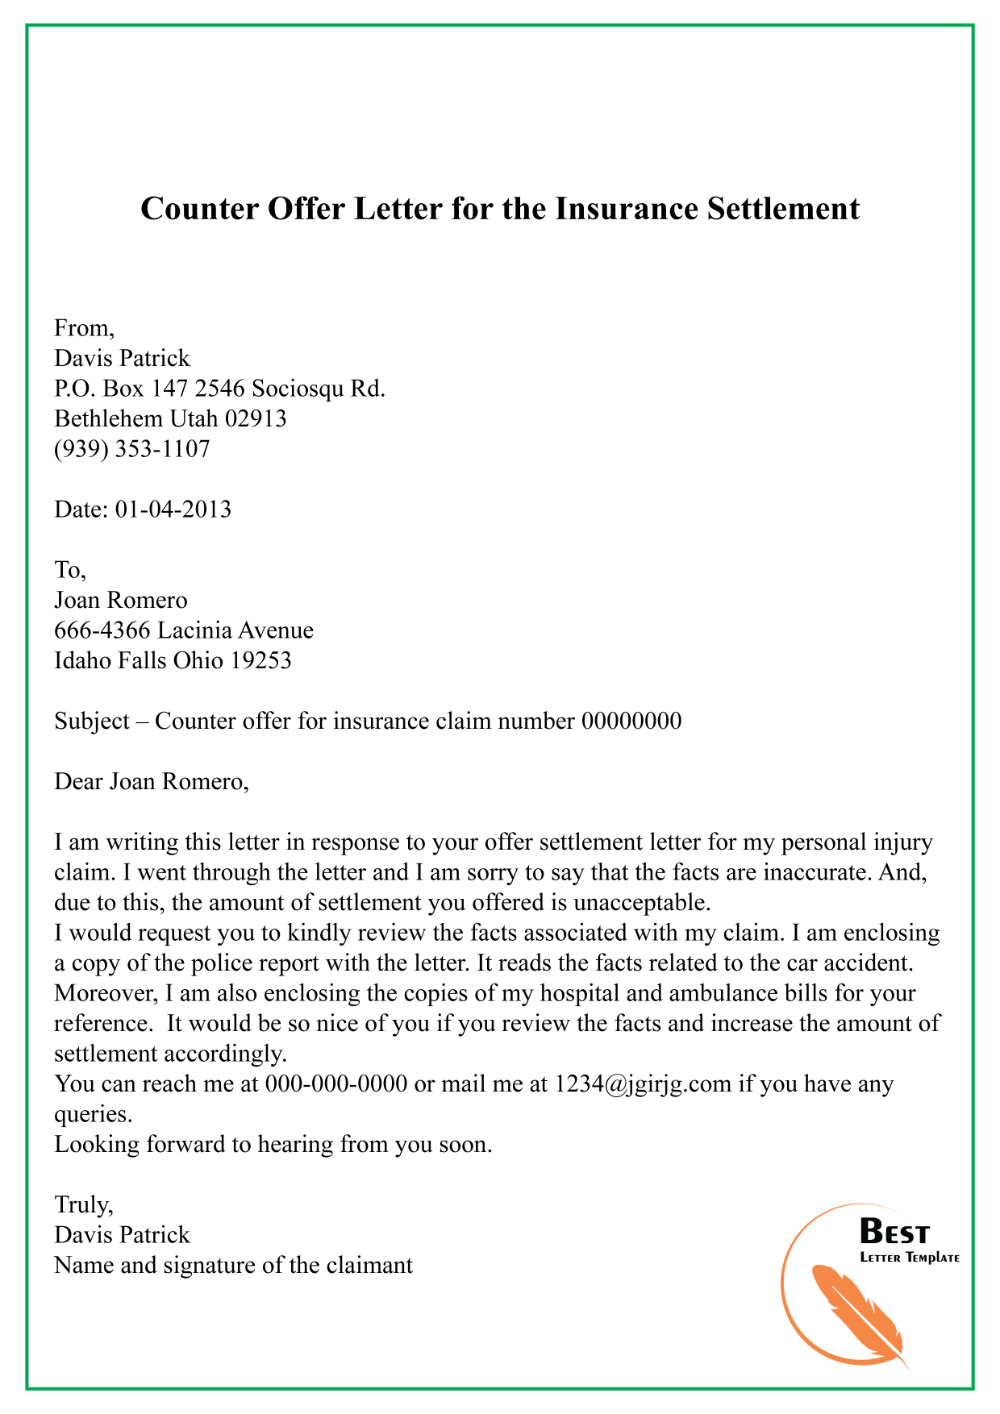 Counter Offer Letter For The Insurance Settlement Best Letter